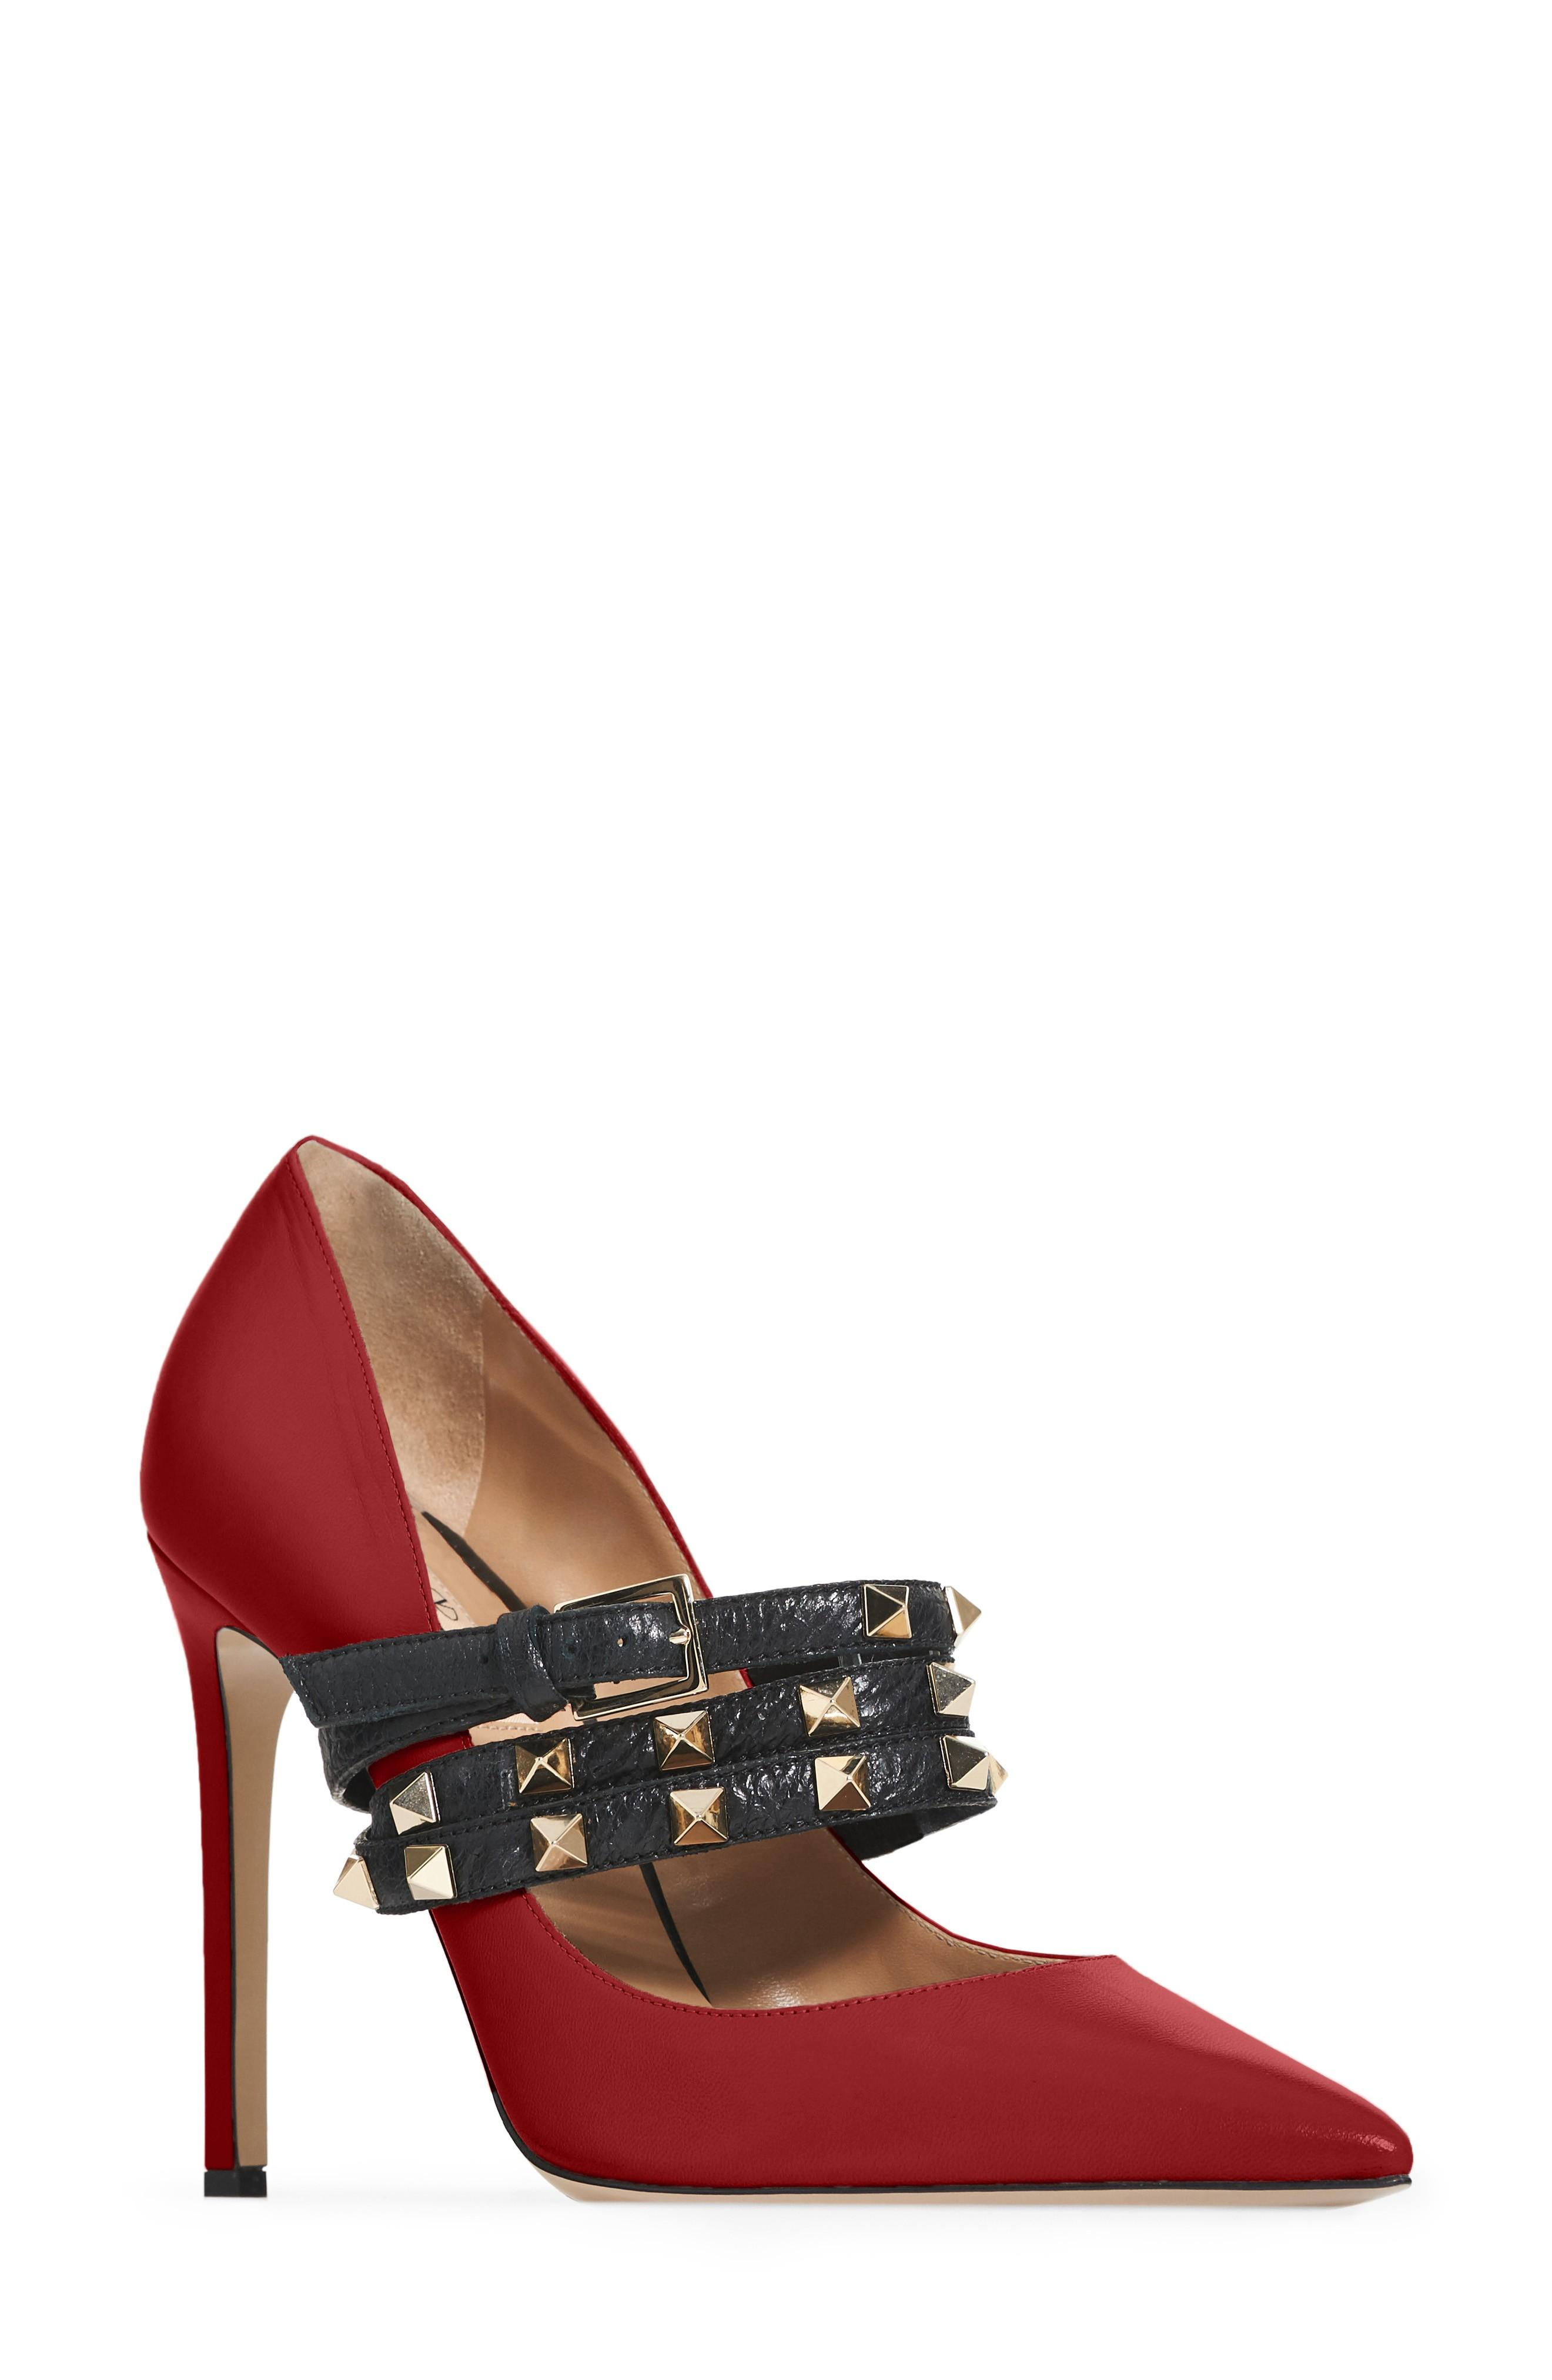 97e78311850 ... Valentino Garavani Rockstud Wrap Pump (Women) (Nordstrom Exclusive).  Style Number  5349156. Available in stores. Available From